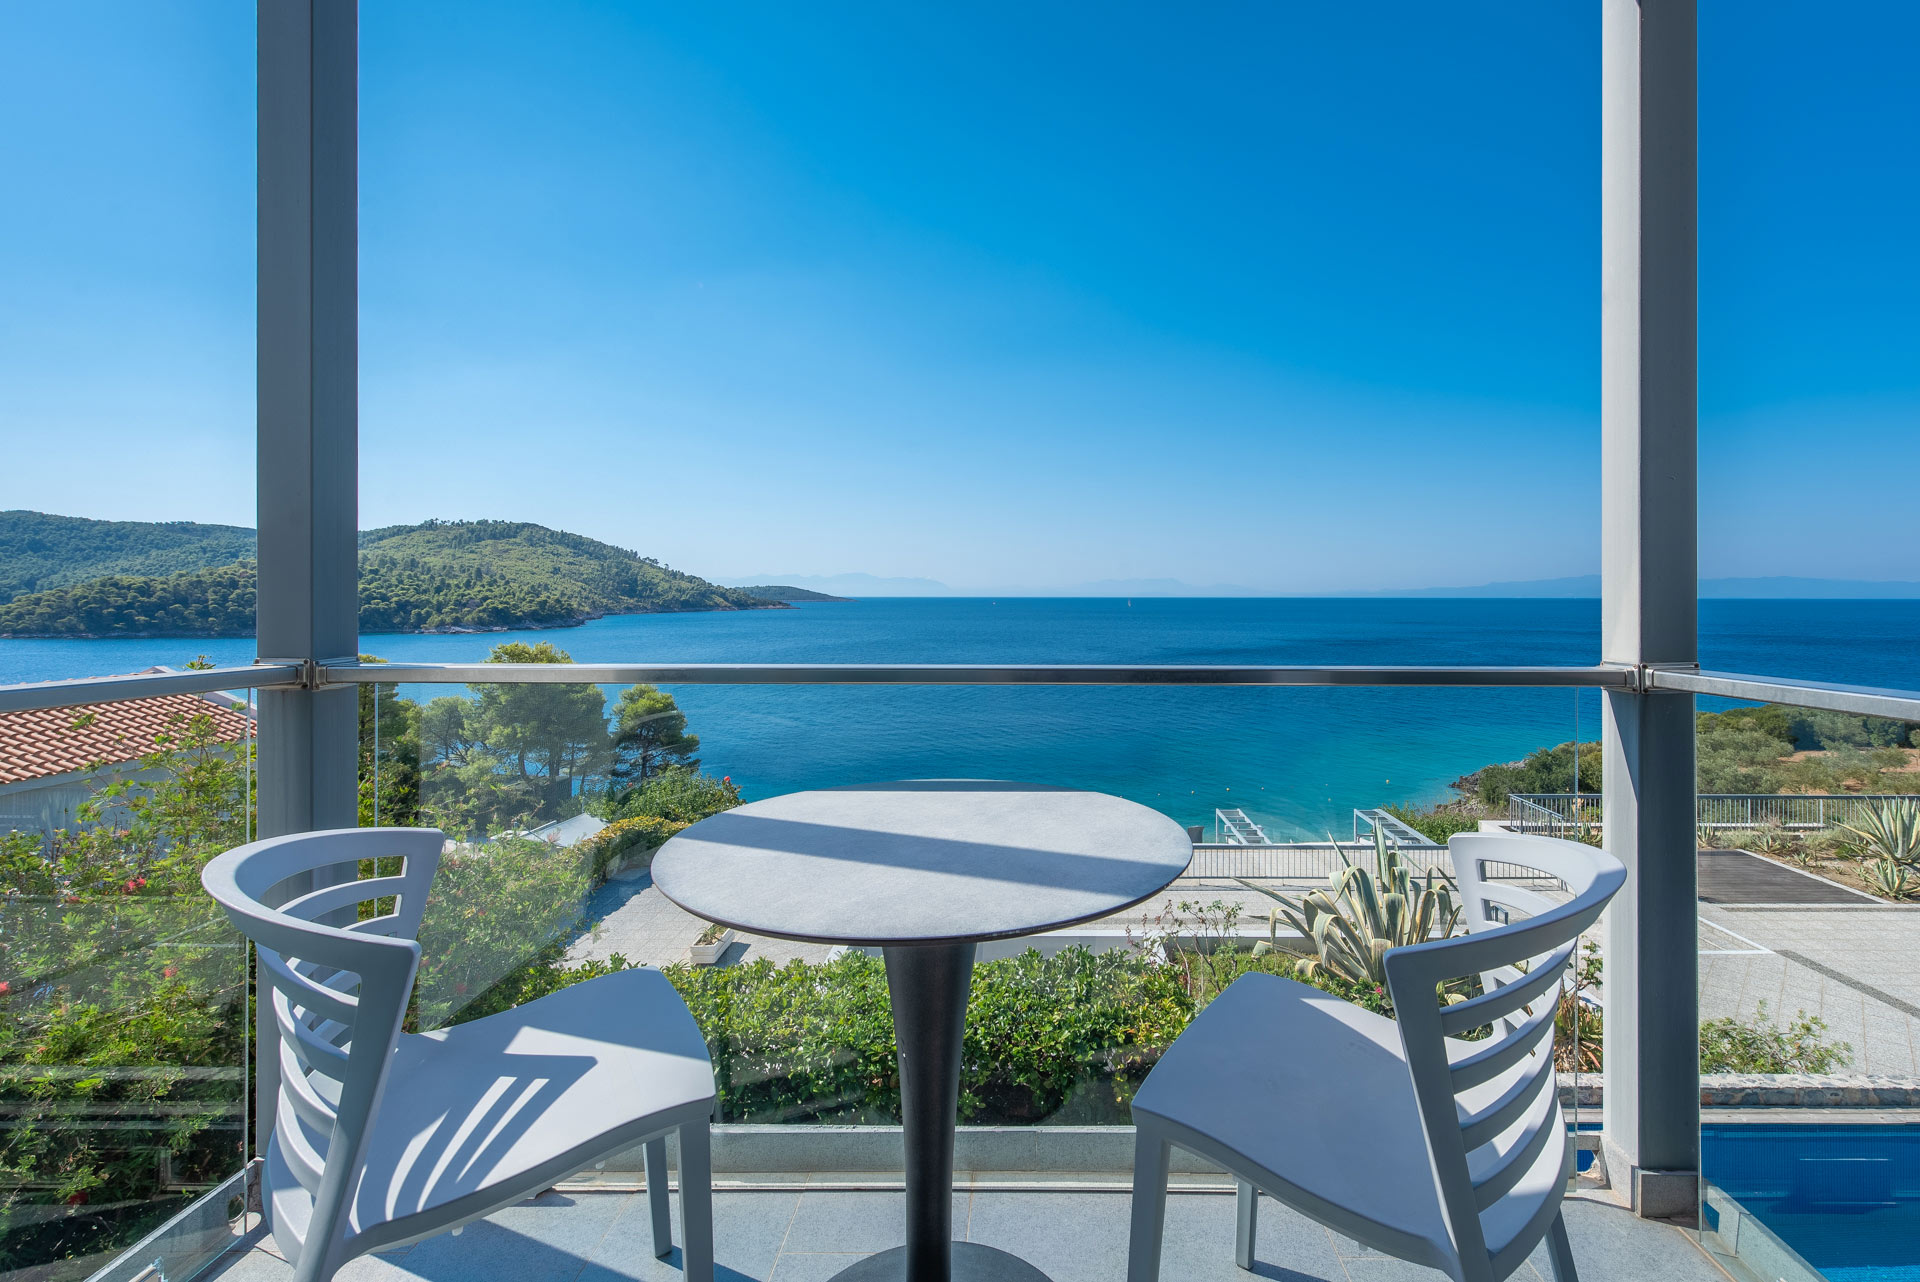 skopelos hotels adrina resort 2 beroom 2 level pool villa 514